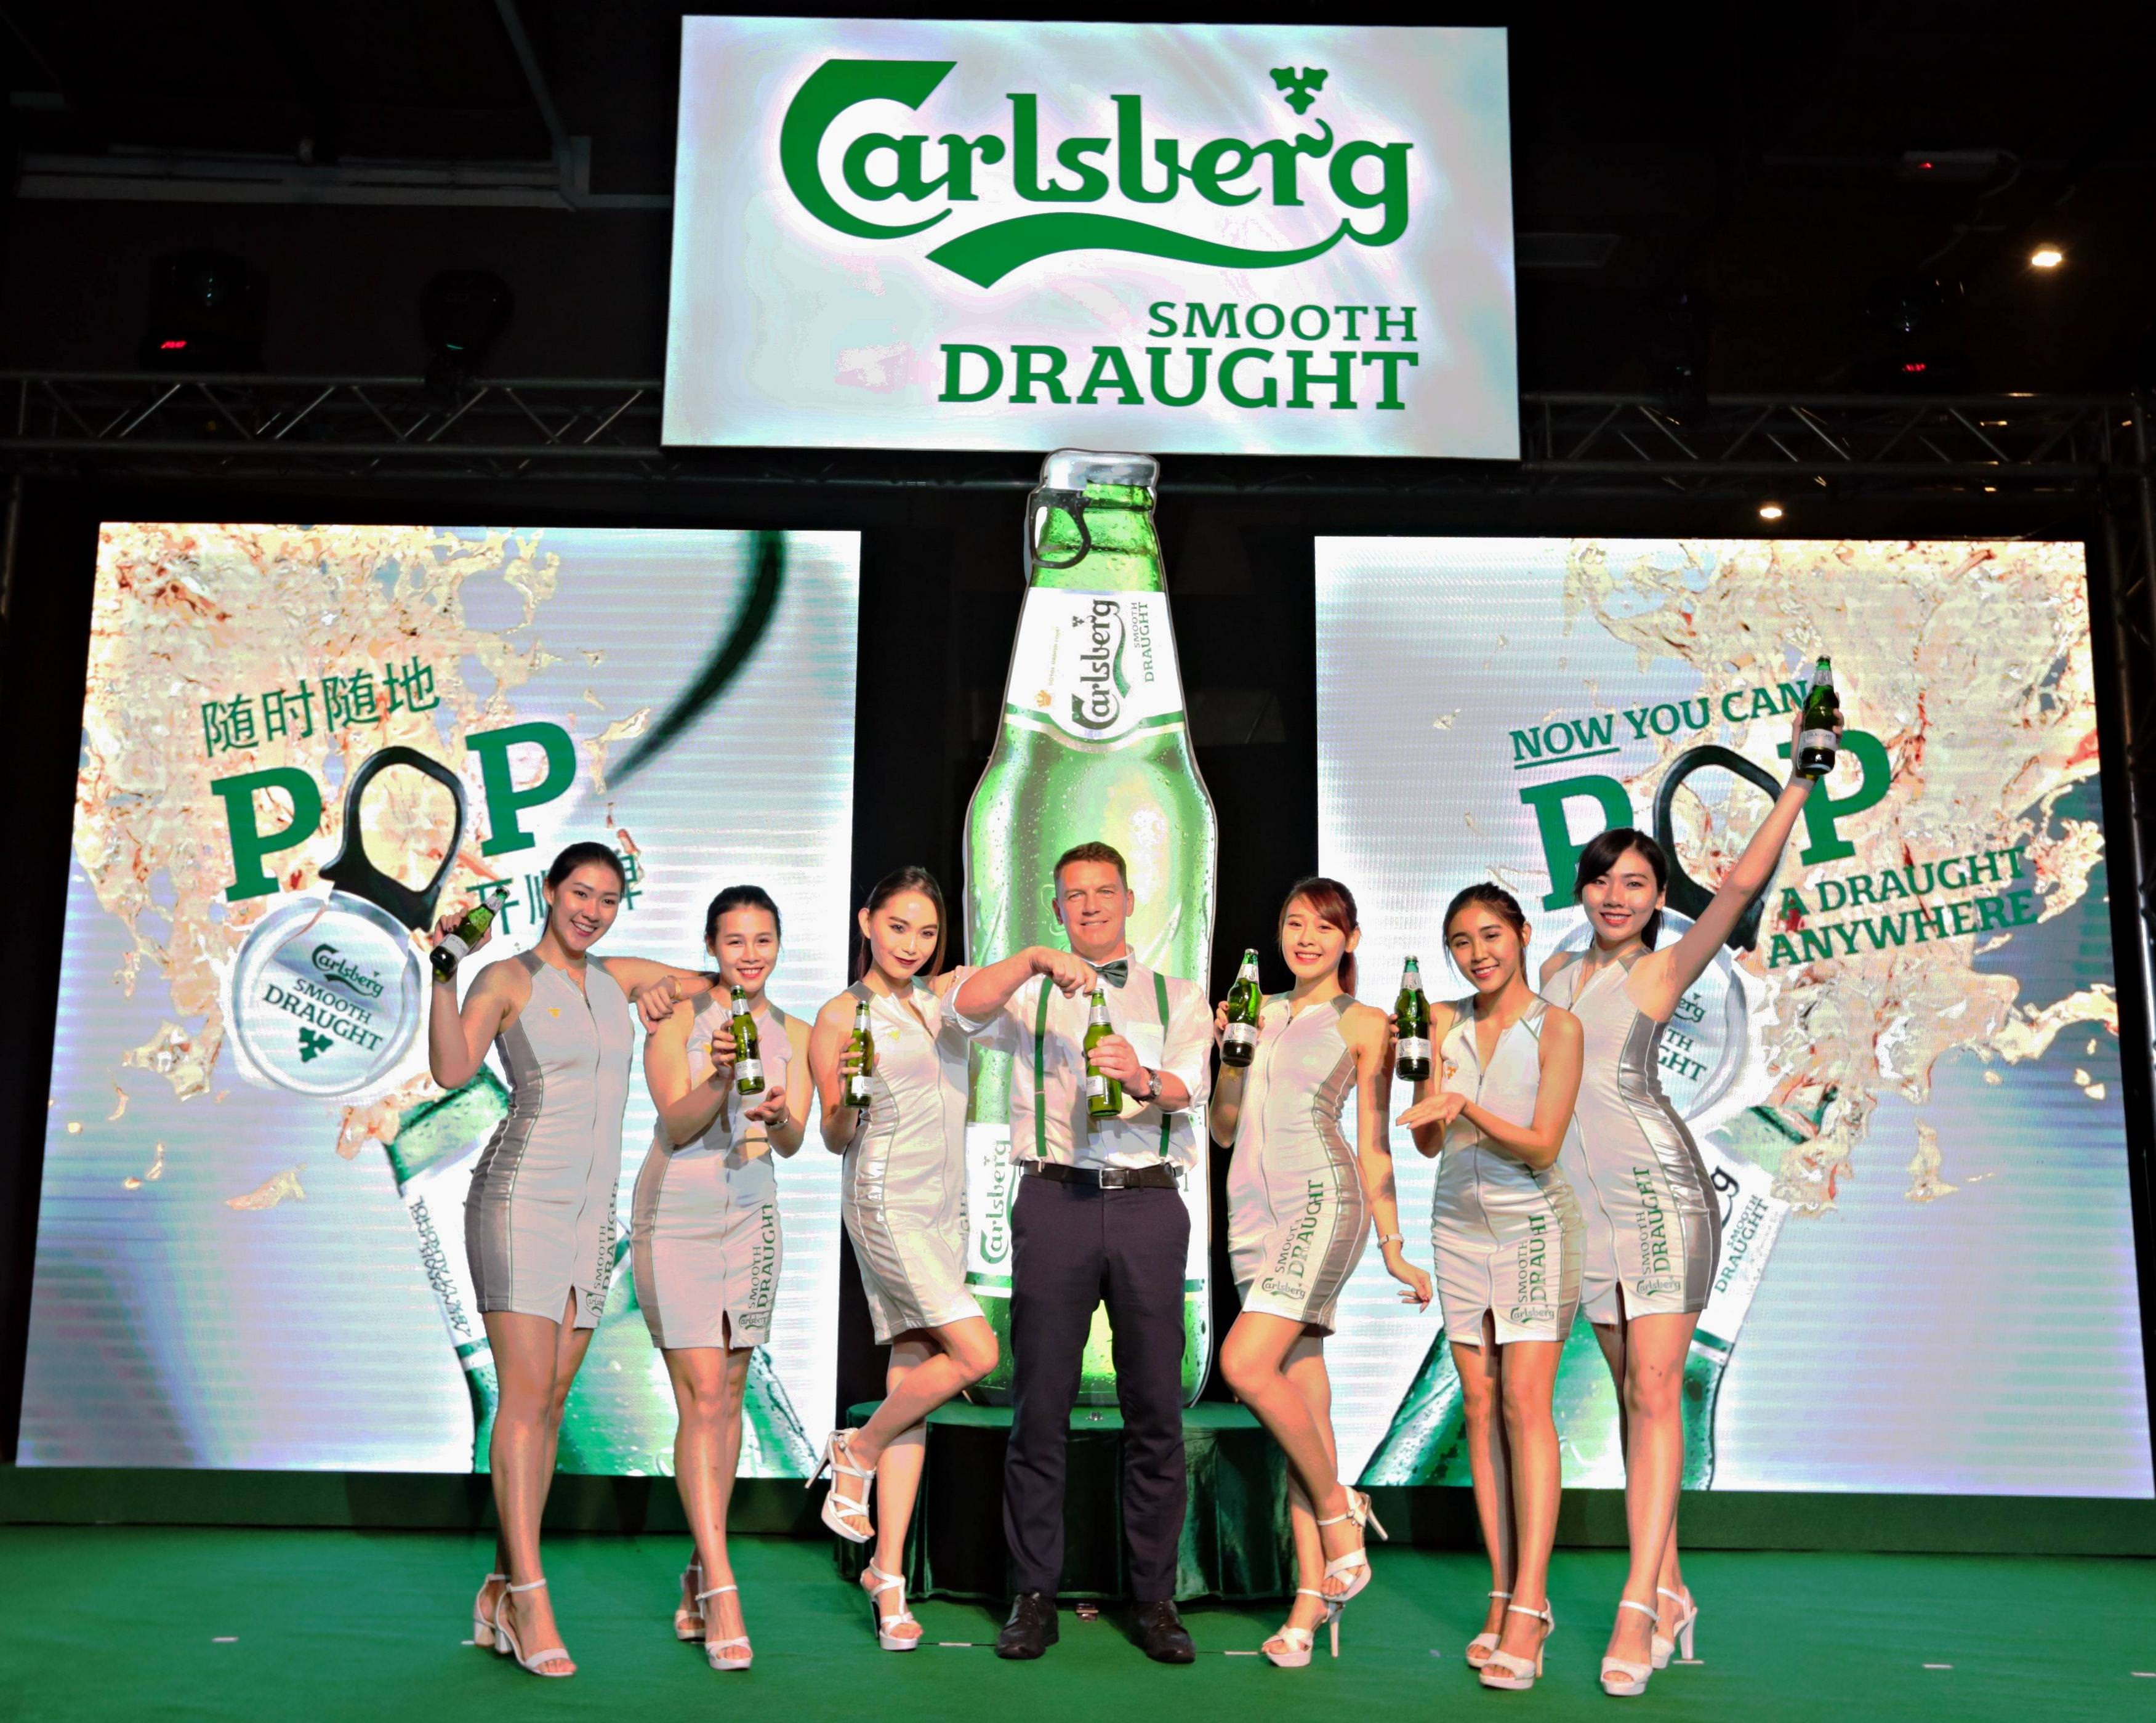 Image from Carlsberg